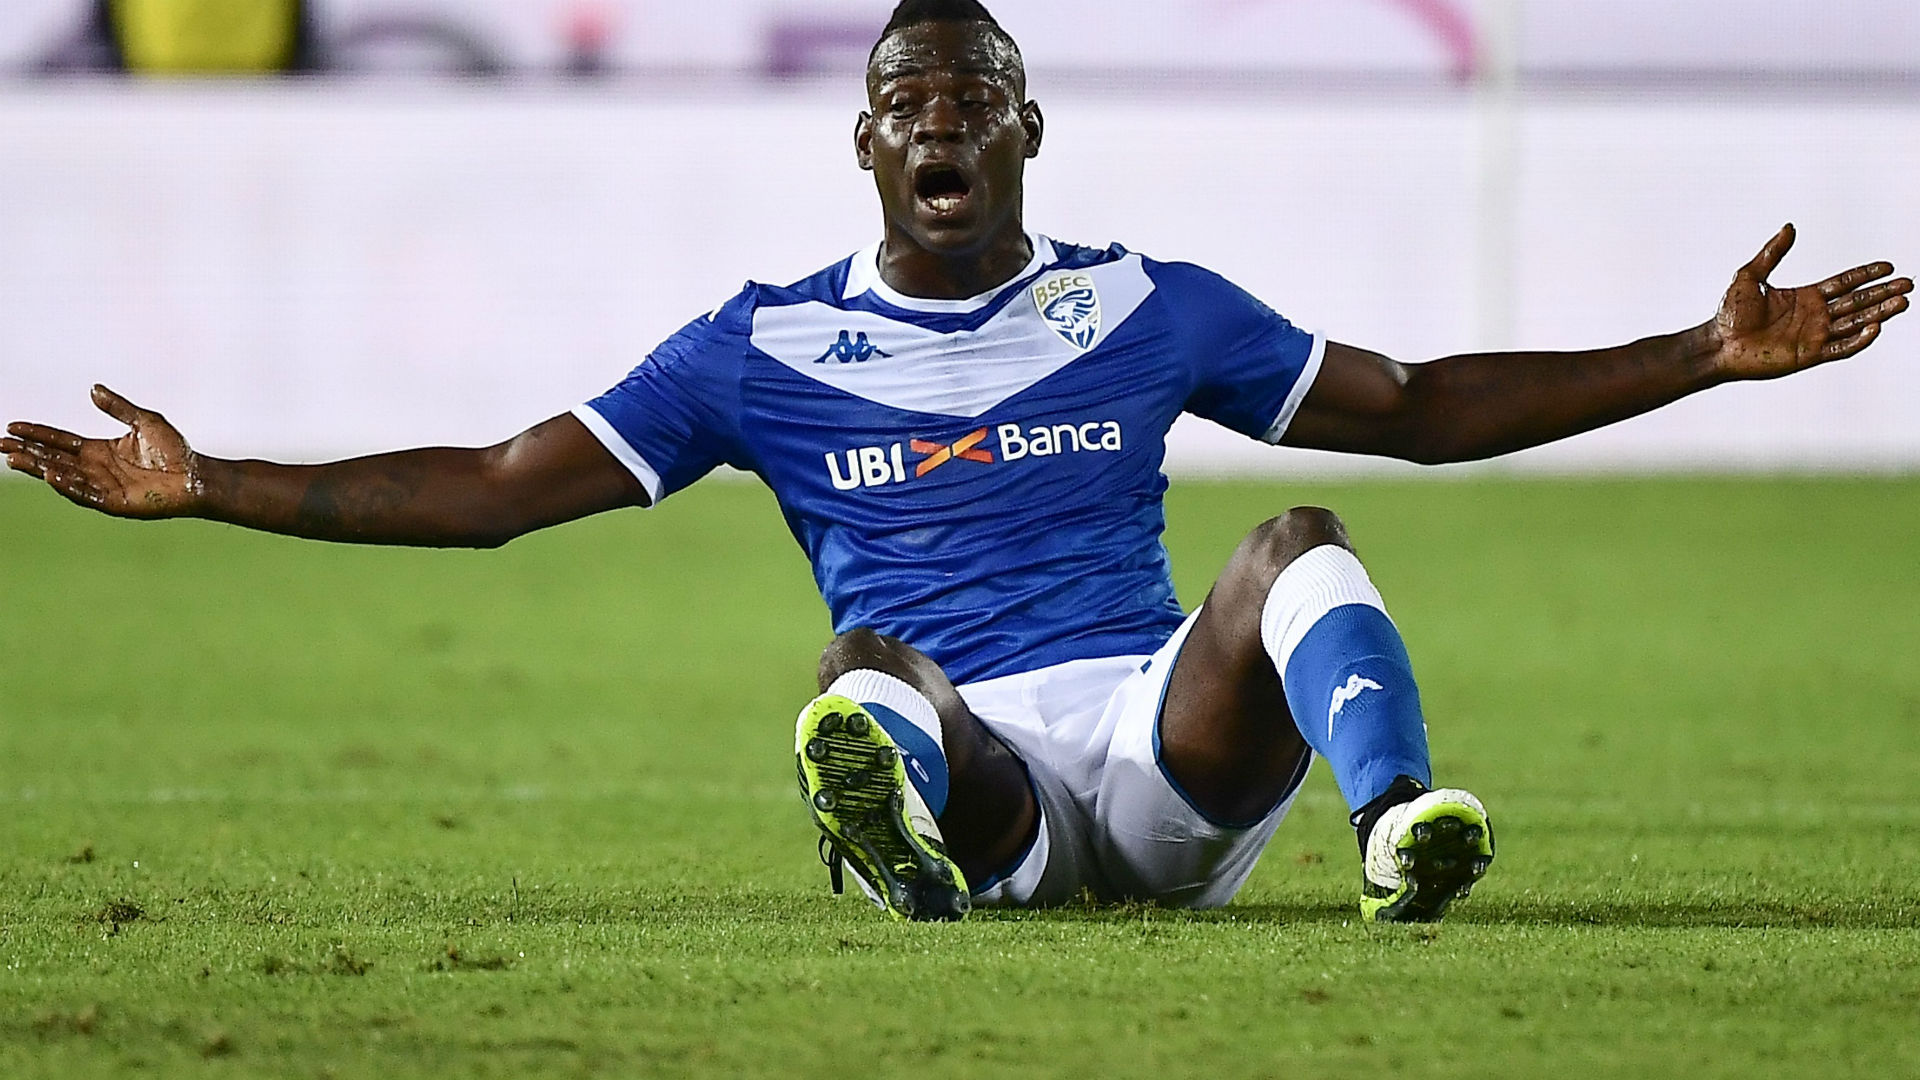 Balotelli is free to leave Brescia in January, says president Cellino